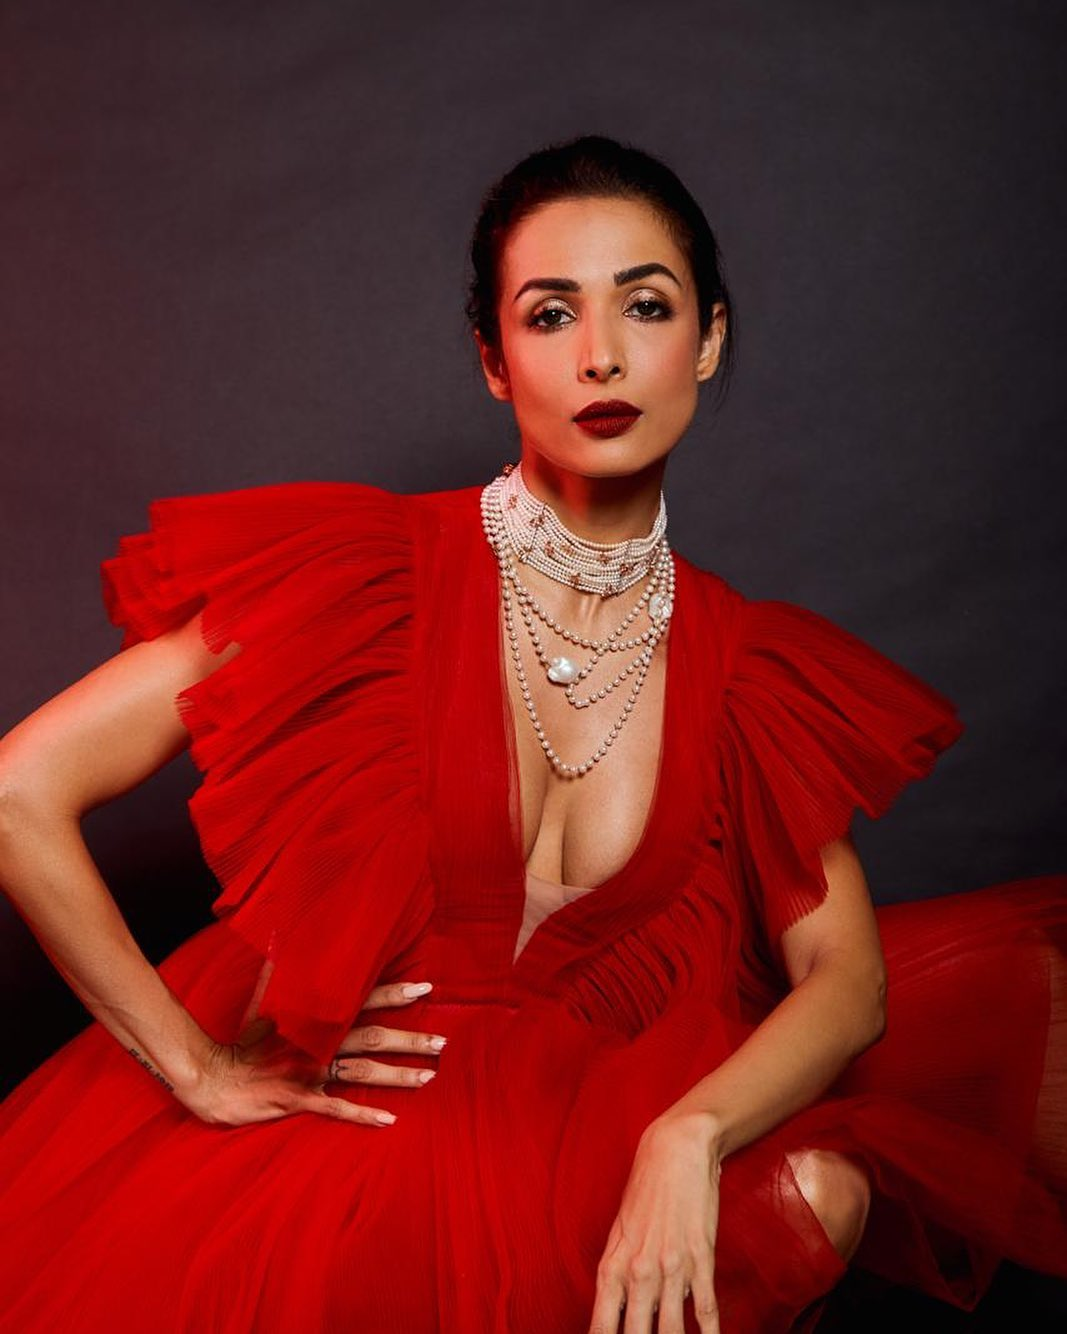 Malaika Arora And Kendall Jenner, Fashion Face-Off: Who Wore The Tulle Red Dress Better?